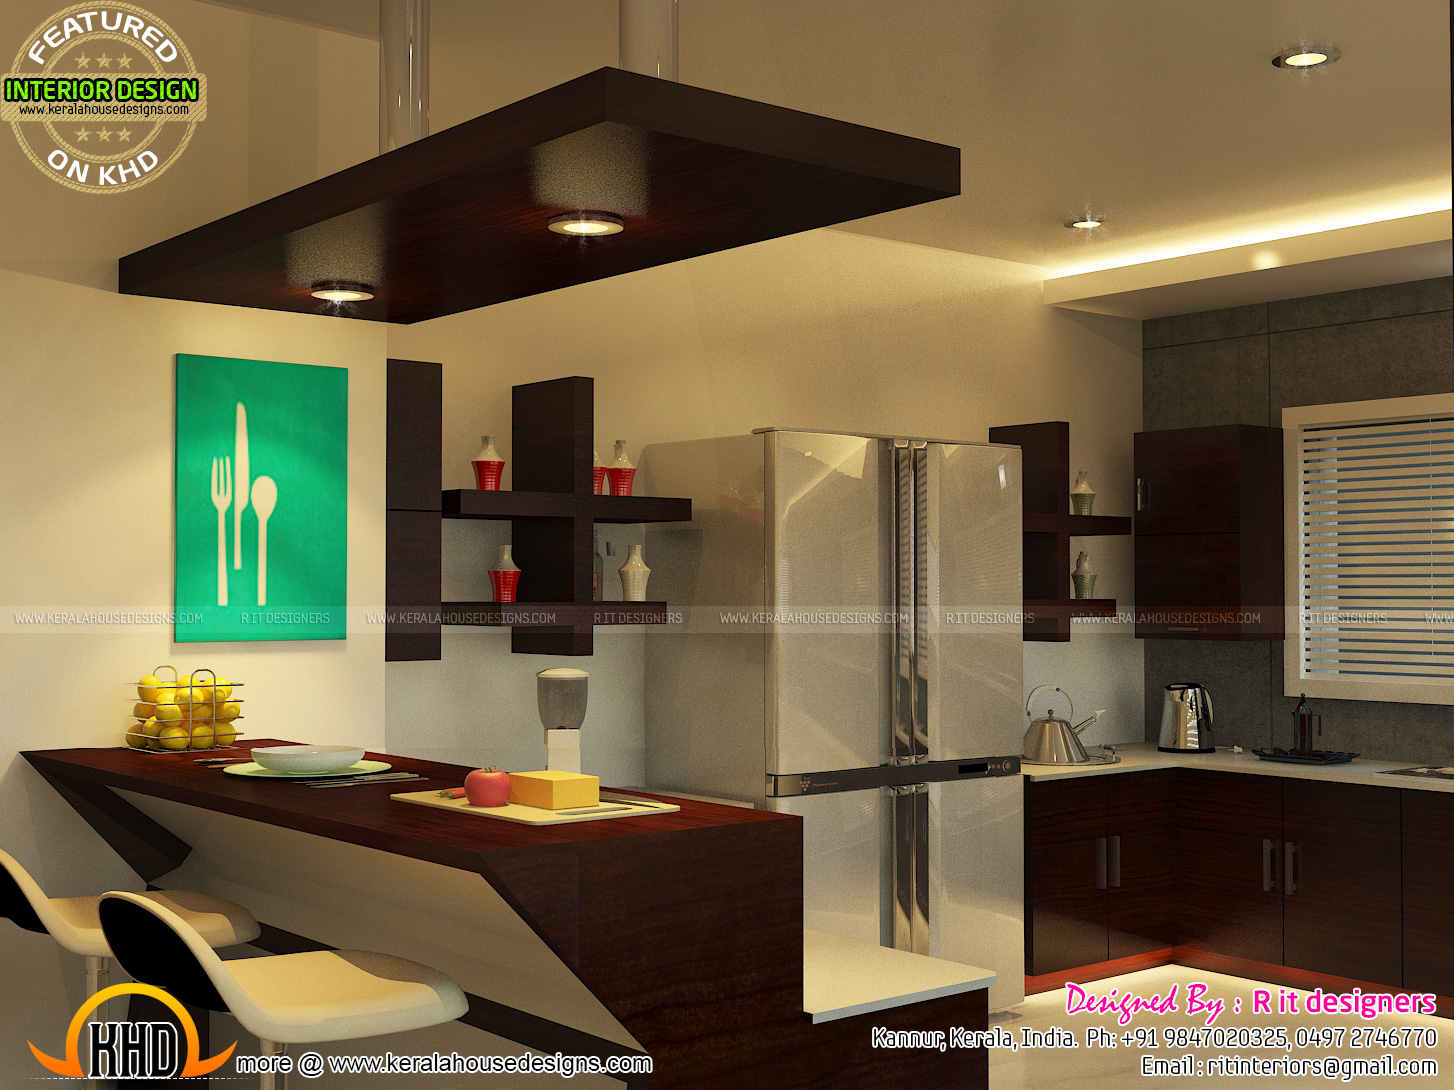 Interior Designs Images Open Kitchen Living Skylight Area Interior Kerala Home